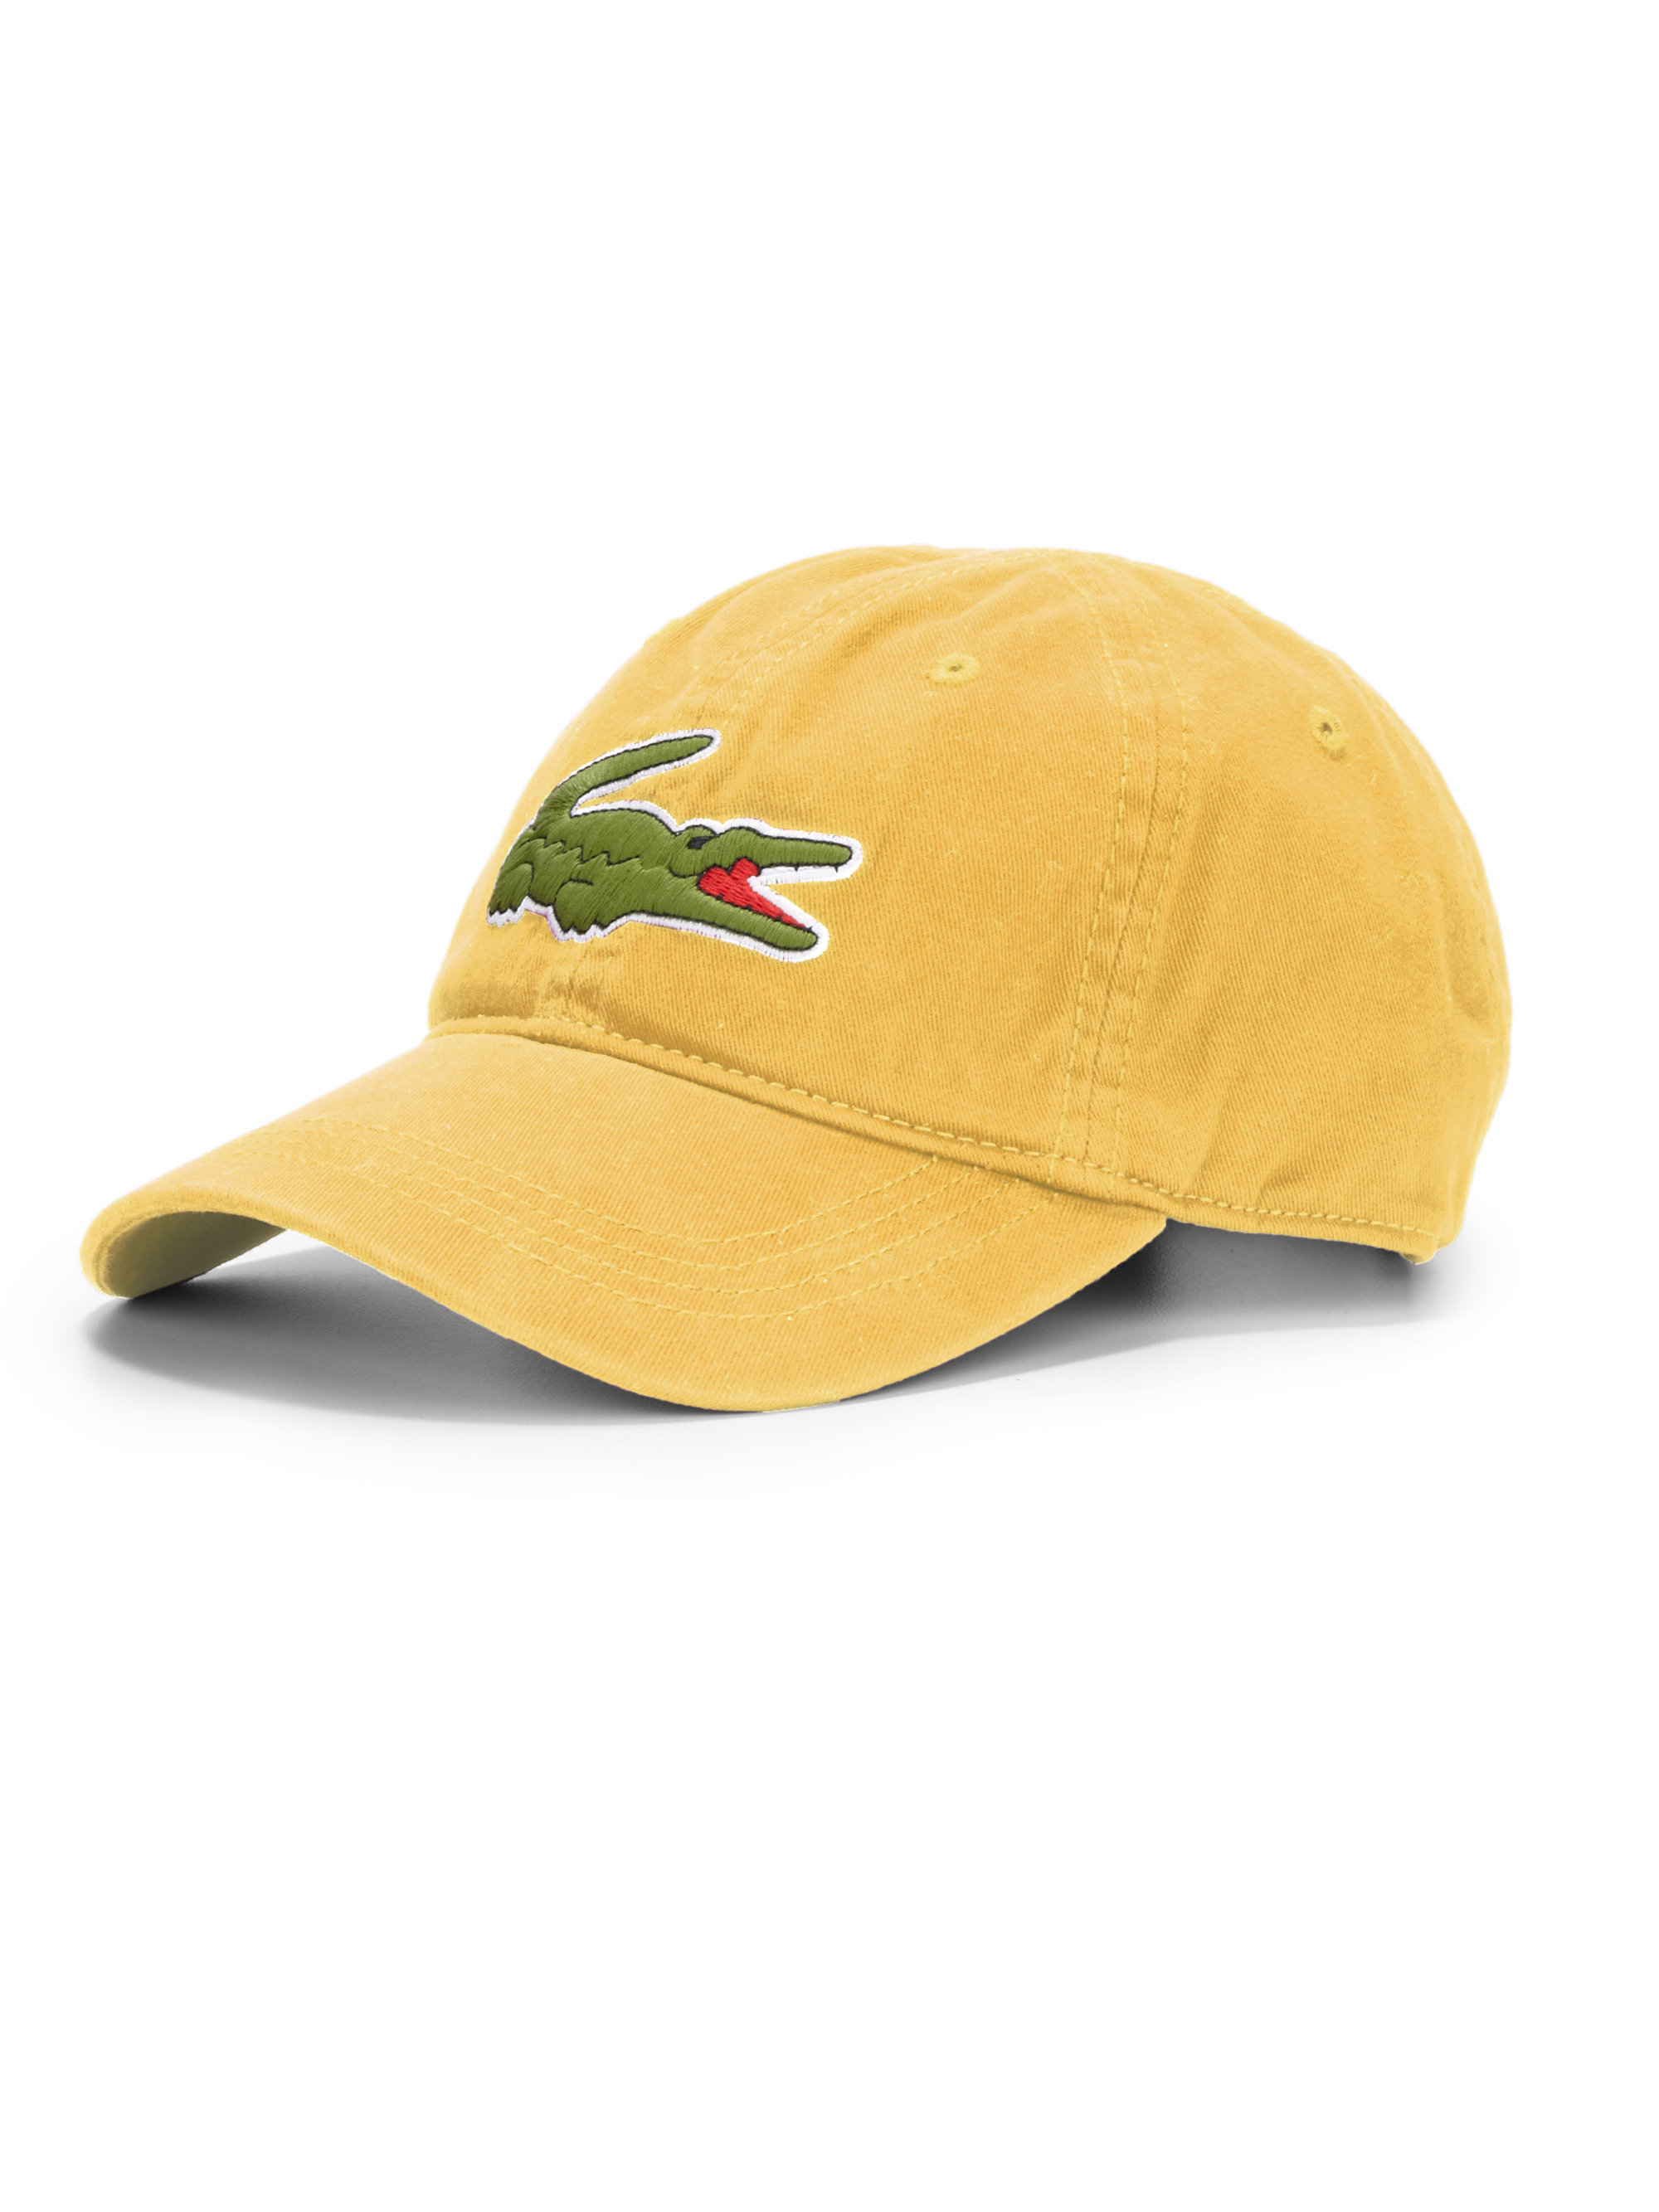 Lyst lacoste cotton baseball cap in yellow for men jpg 2000x2667 Lacoste  sport hats 9a2d3db027dc